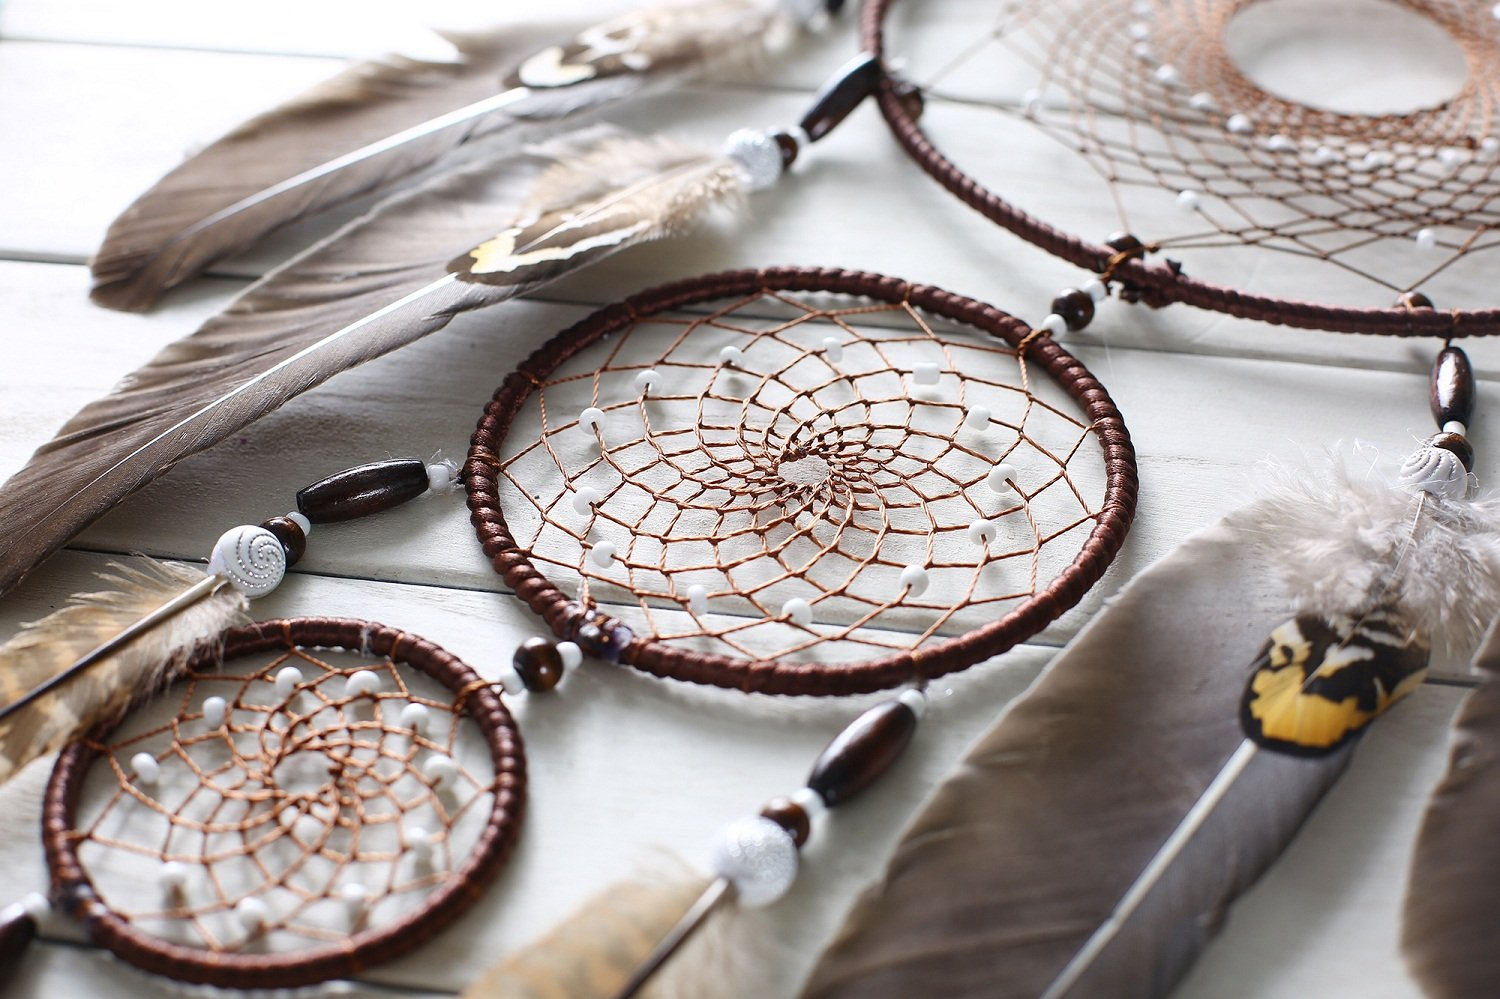 Large Brown Dream Catcher 8x31 Inch Beaded Nature Feathers With 3 Handmade Weave Webs Boho Hippie Native American Wall Hanging For Bedroom Baby Shower Party Home Dorm Aesthetic Living Room Decor by DrCor (Image #3)